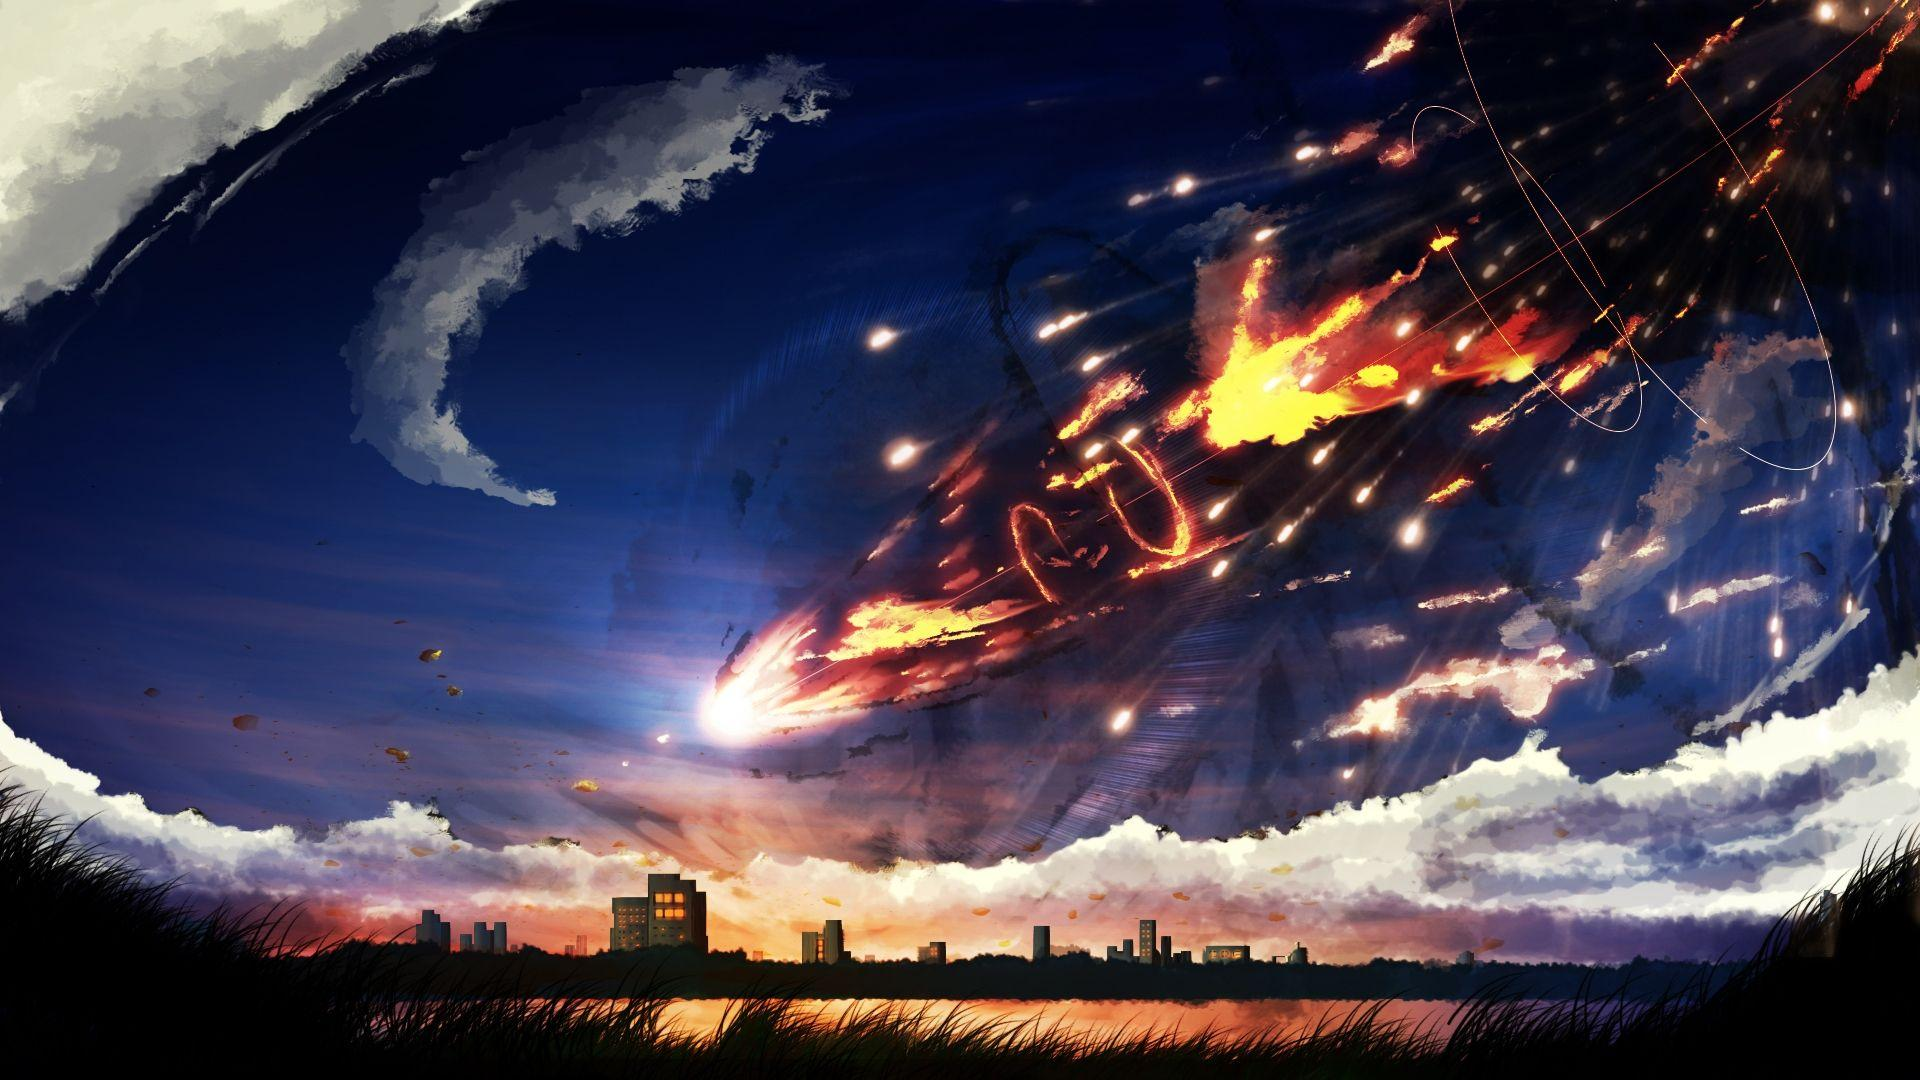 Anime Sky Wallpapers - Wallpaper Cave